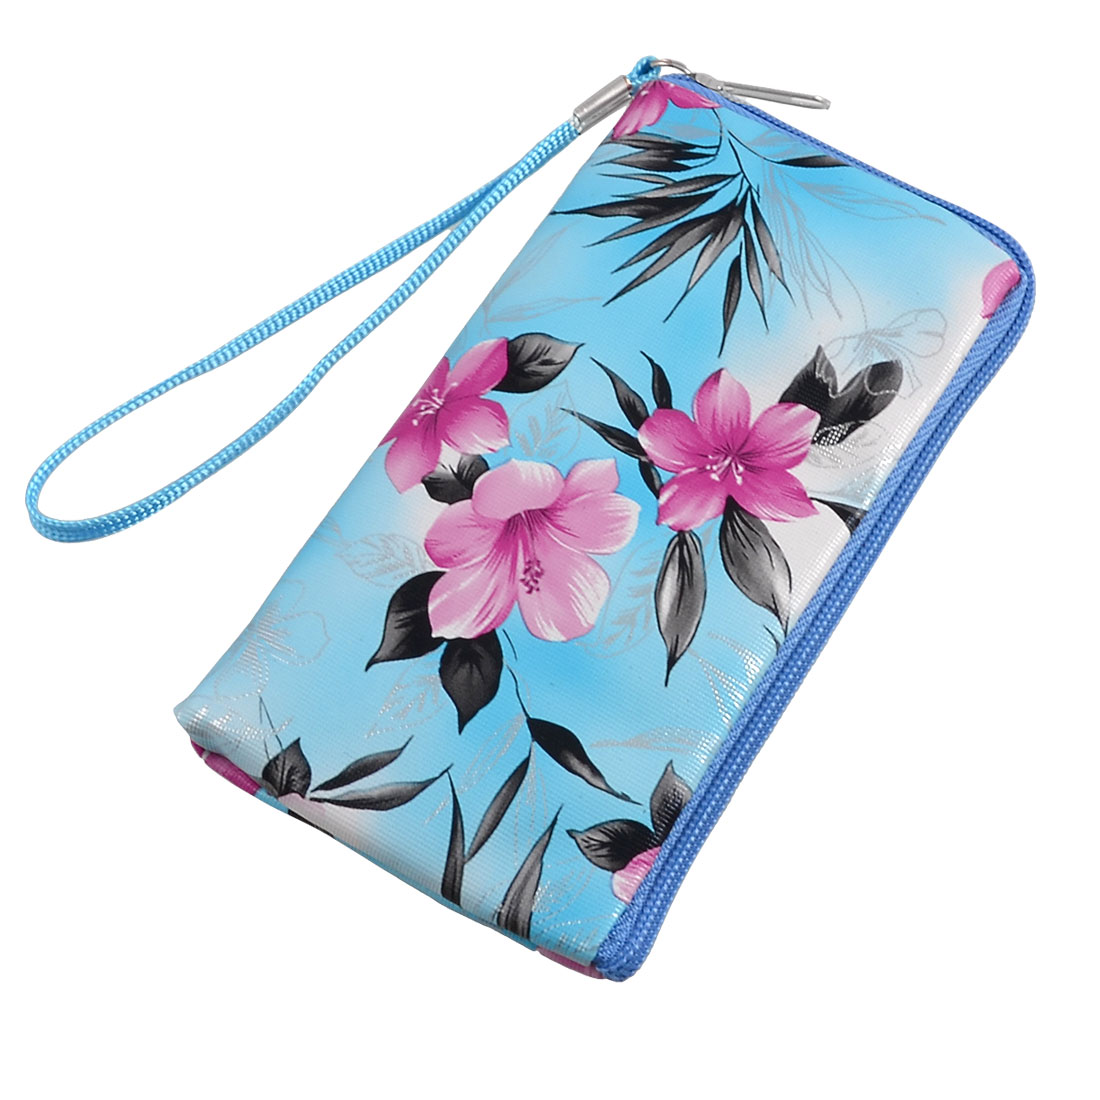 Blue Red Floral Prints Cell Phone MP3 MP4 Pouch Bag w Strap